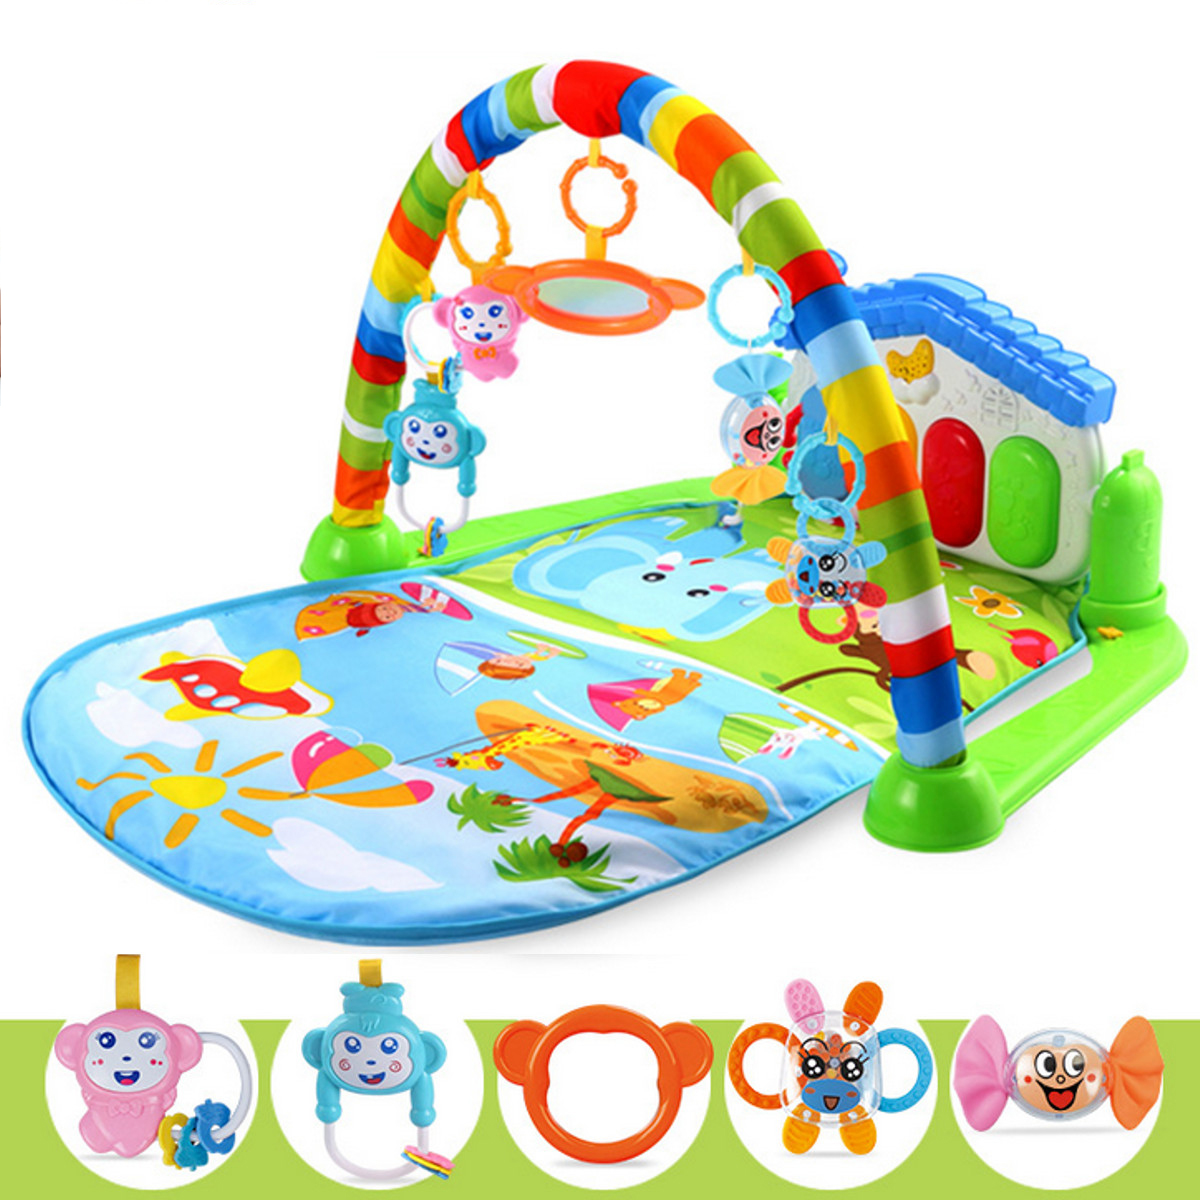 3 In 1 Baby Kid Playmat Play Musical Pedal Piano Activity